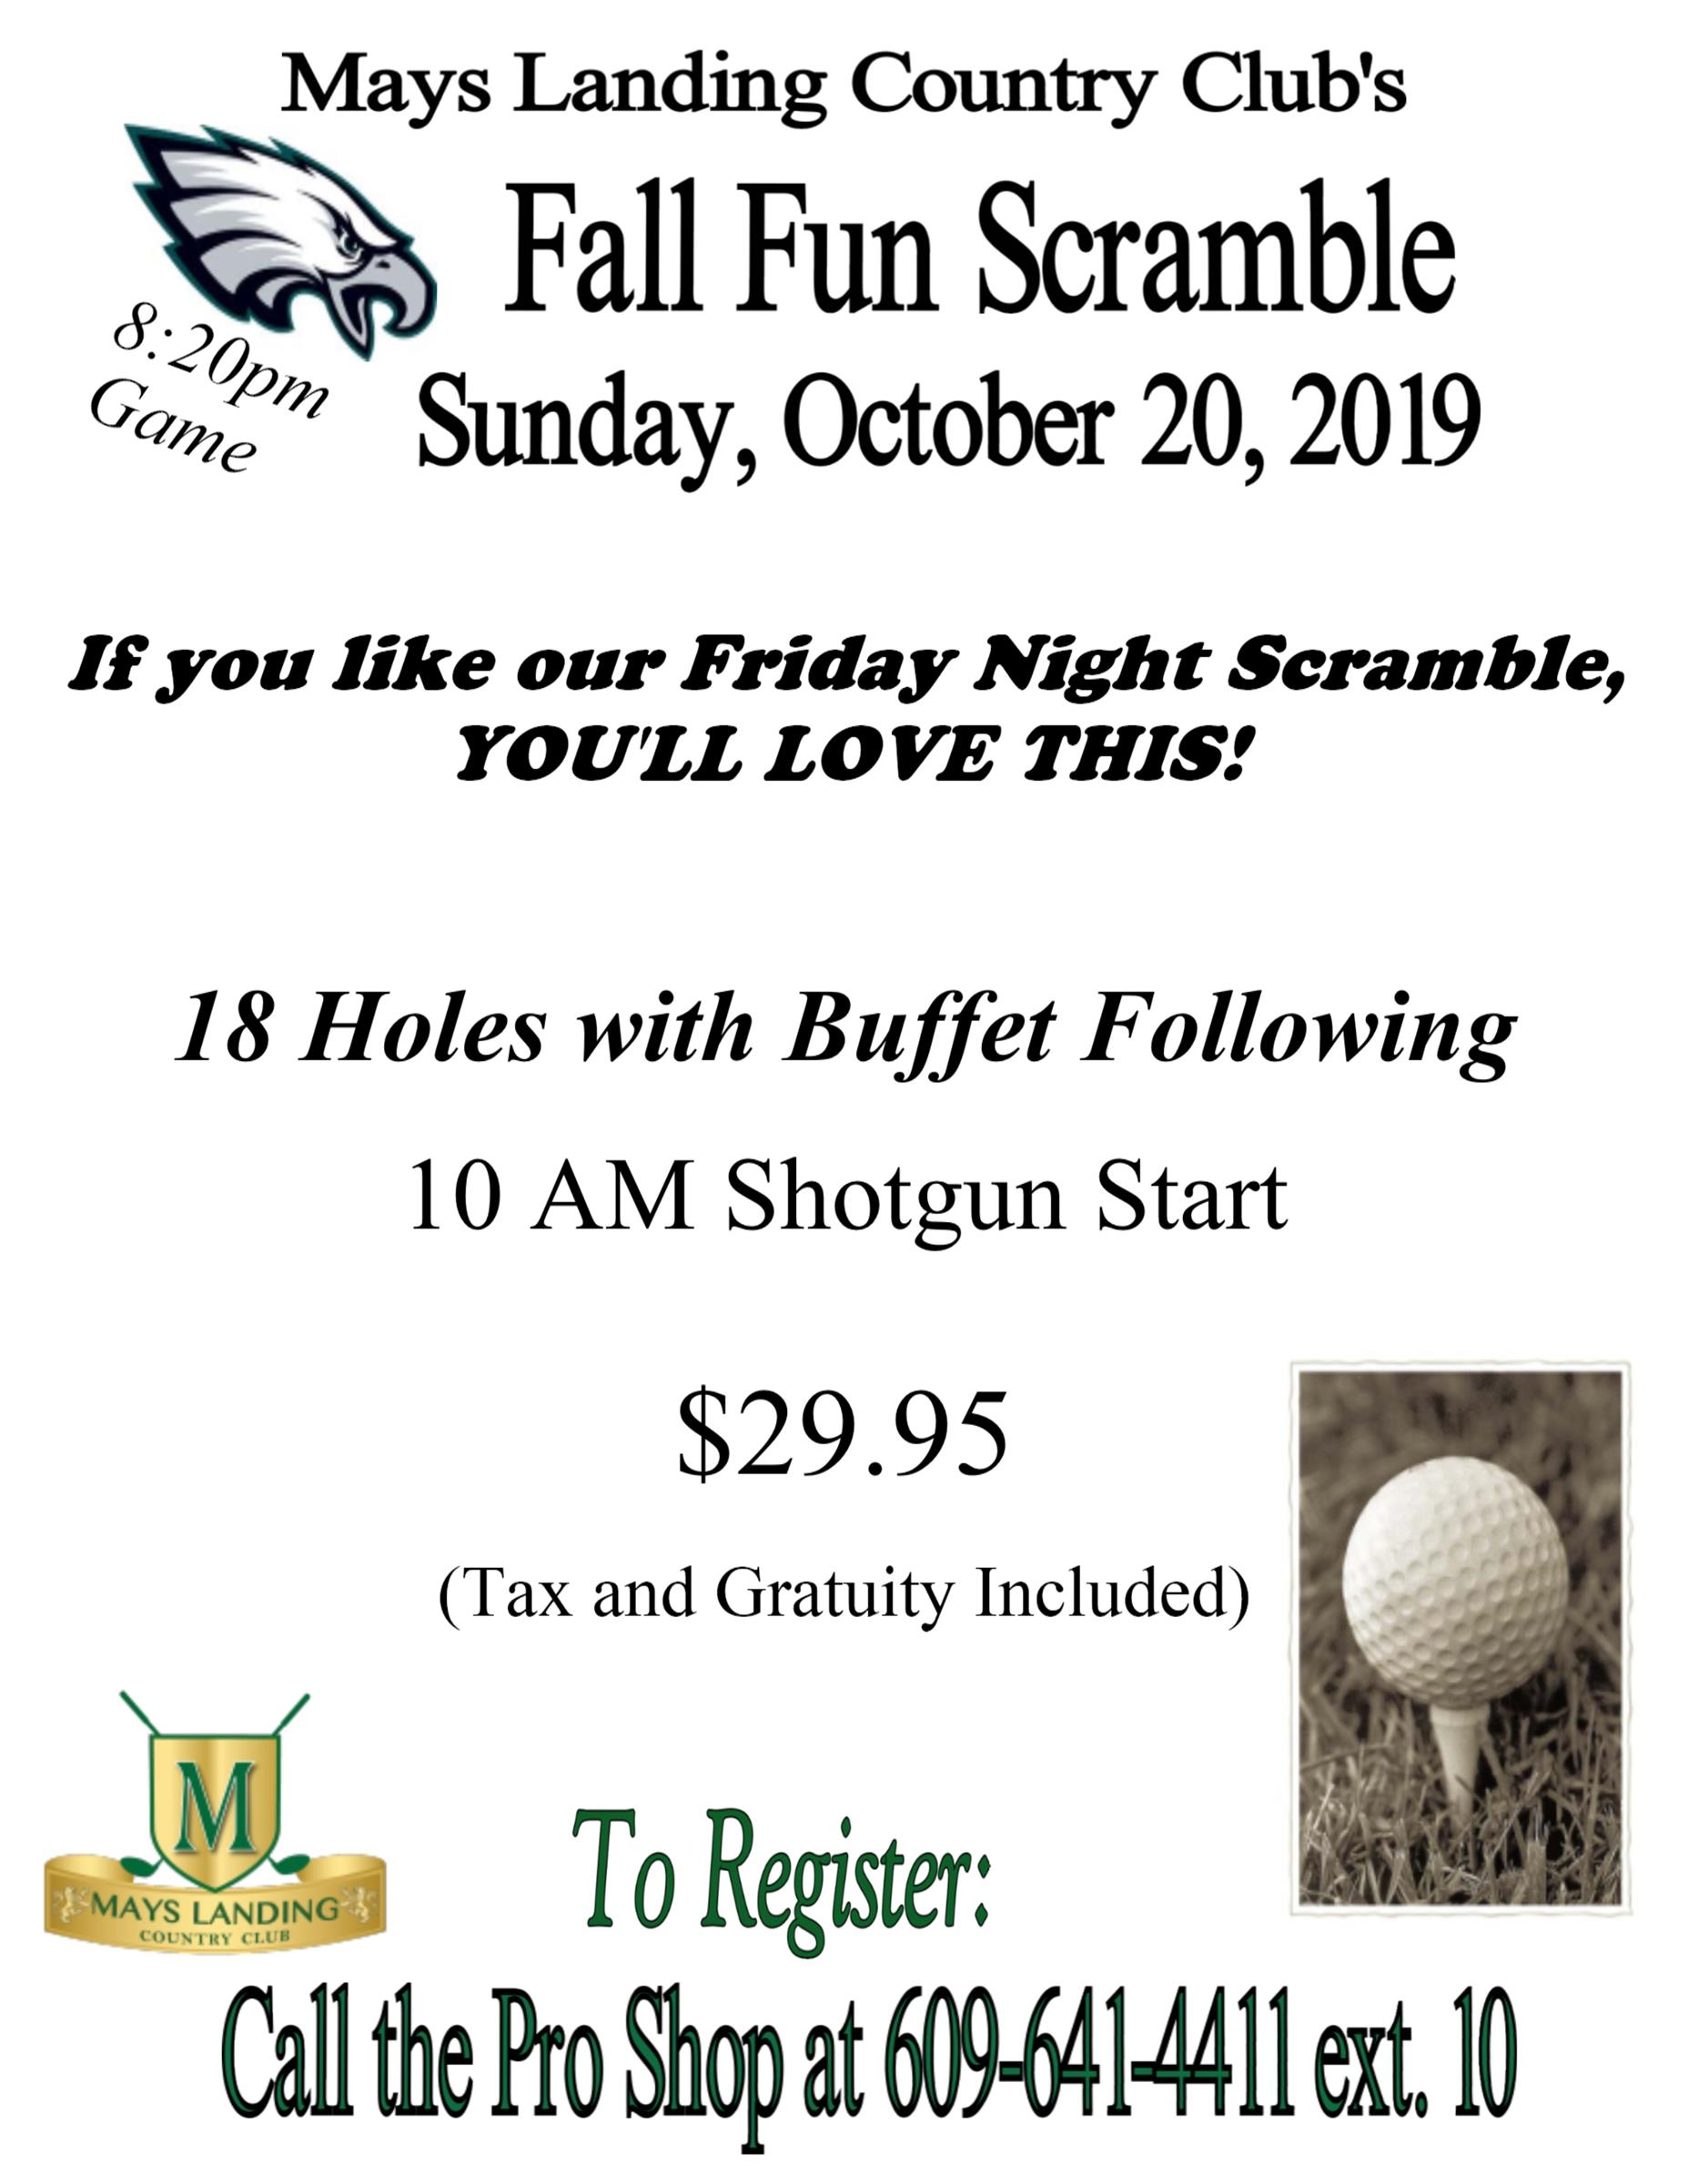 Fall Fun Scramble. Sunday, October 20th. If you love our friday night scramble, you'll love this! 18 holes with buffet following. 10 am shotgun start. $29.95. To register call the pro shop at 609-641-4411 EXT. 0